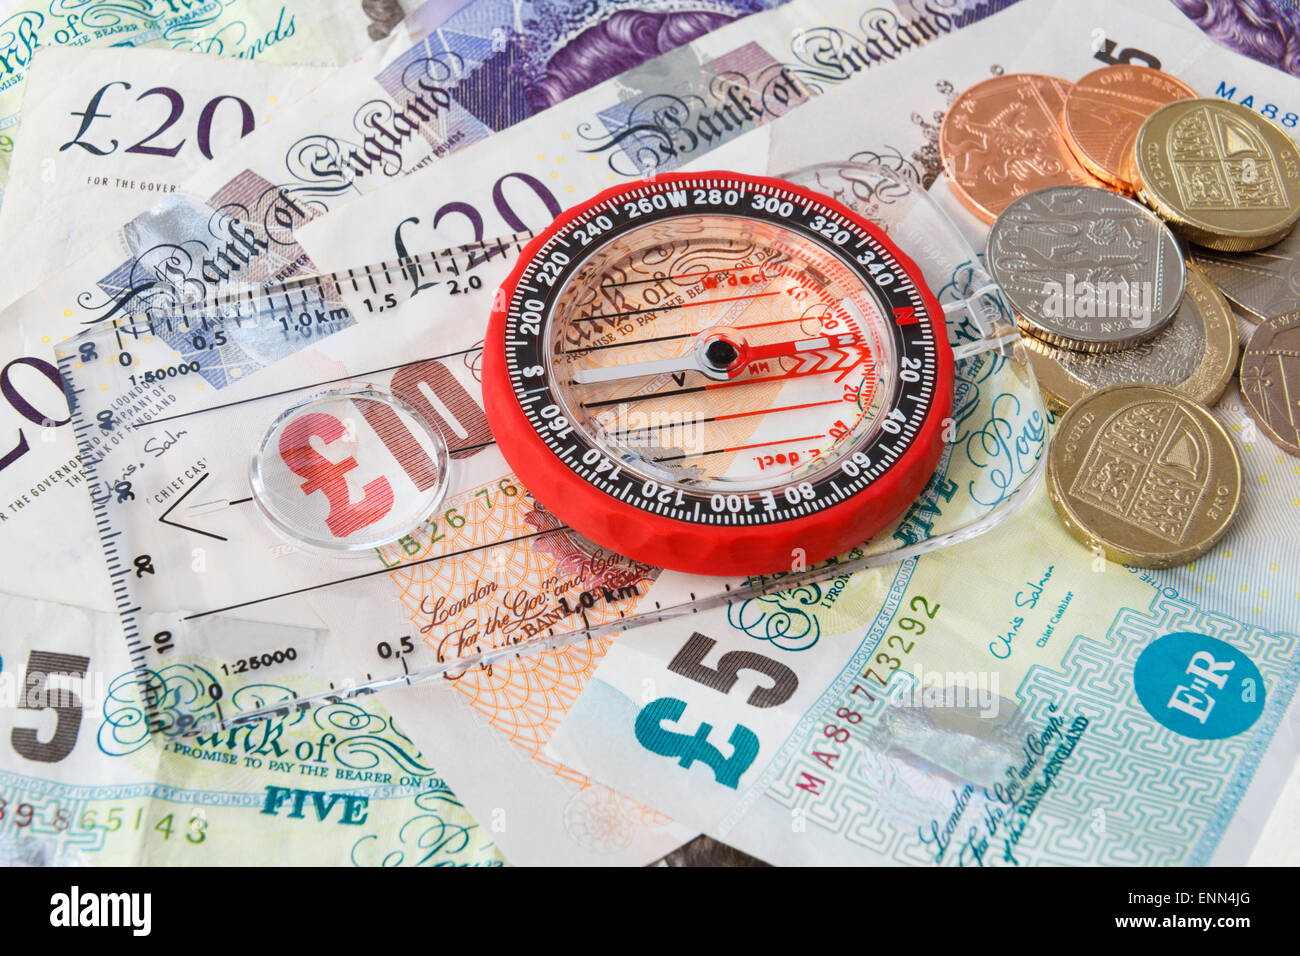 Sterling money with a compass pointing south to illustrate the direction of British economy, finance concept. England Stock Photo